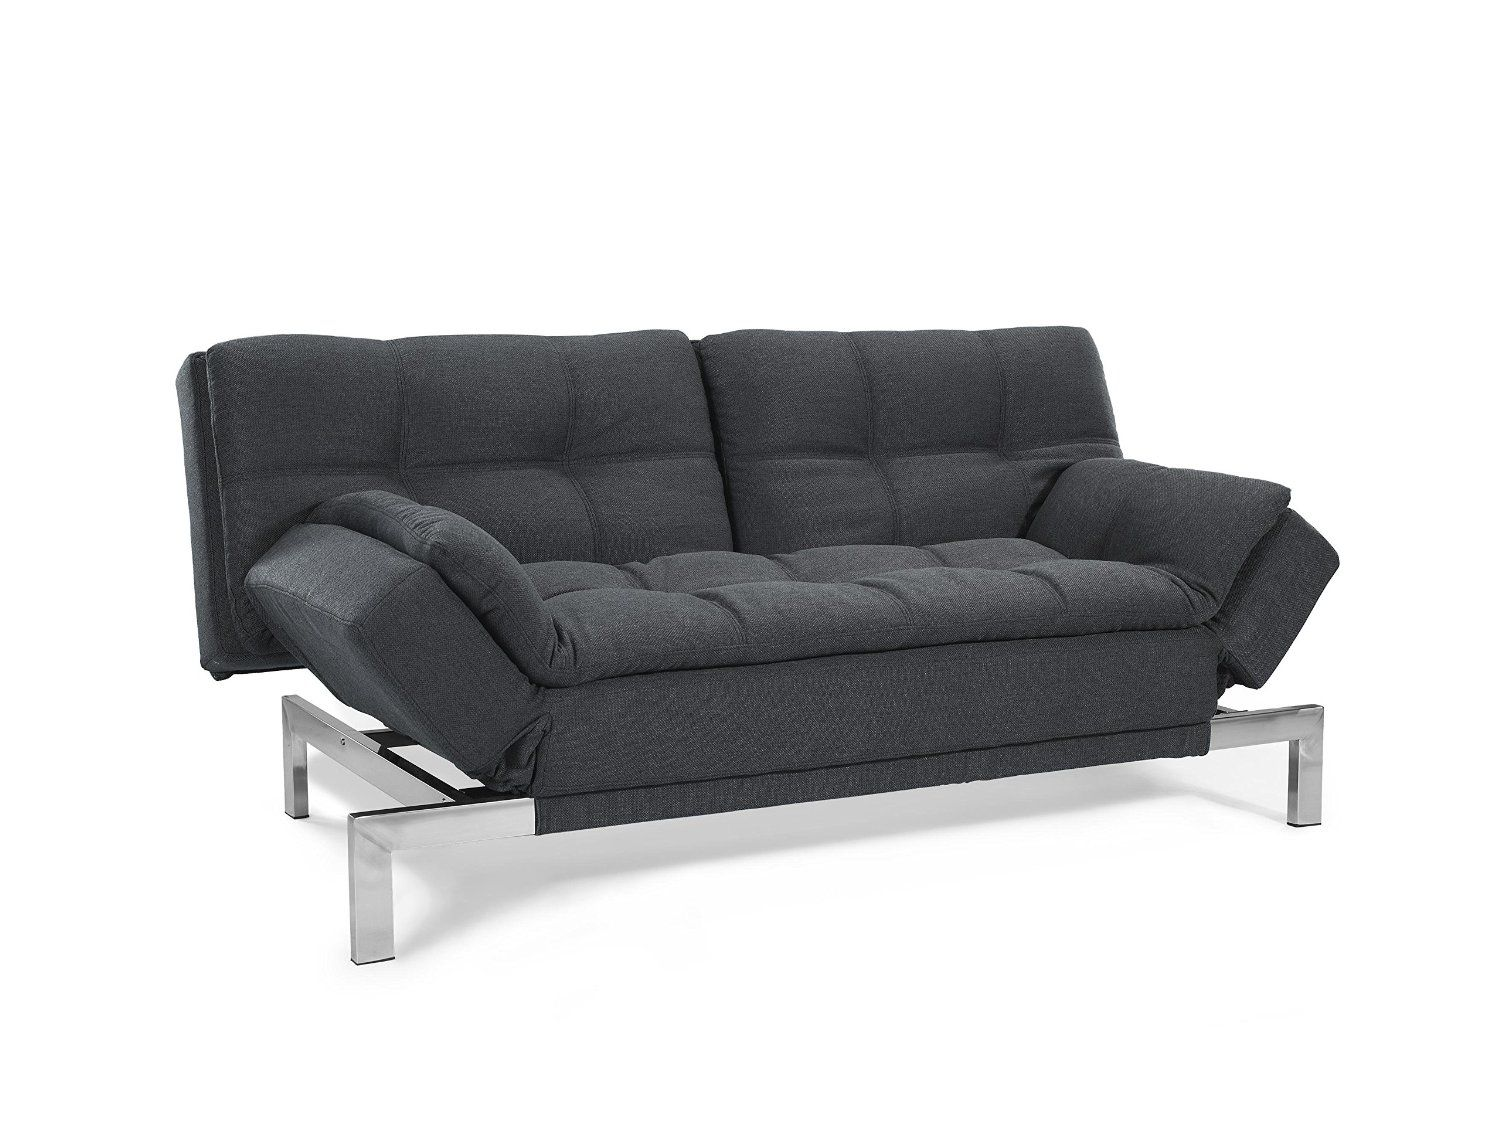 Amazon Sofa Bed Grey Amazon Serta Charcoal Grey Boca Sofa Kitchen Dining